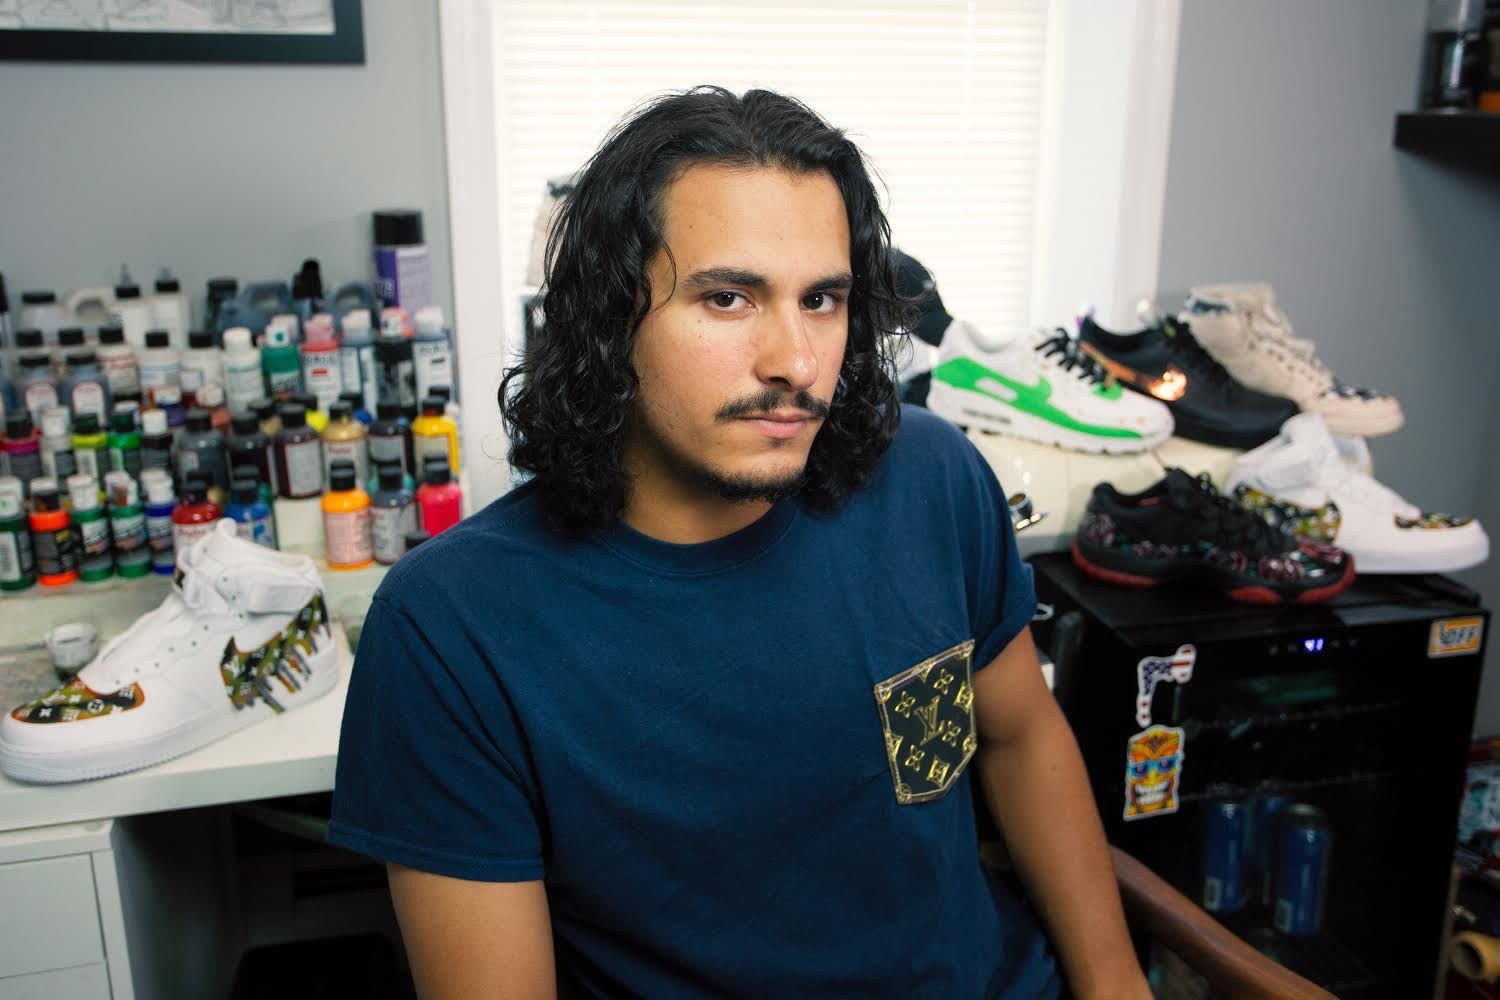 How Danny Toimil Gained Popularity With His Unforgettable Customized Sneaker Designs